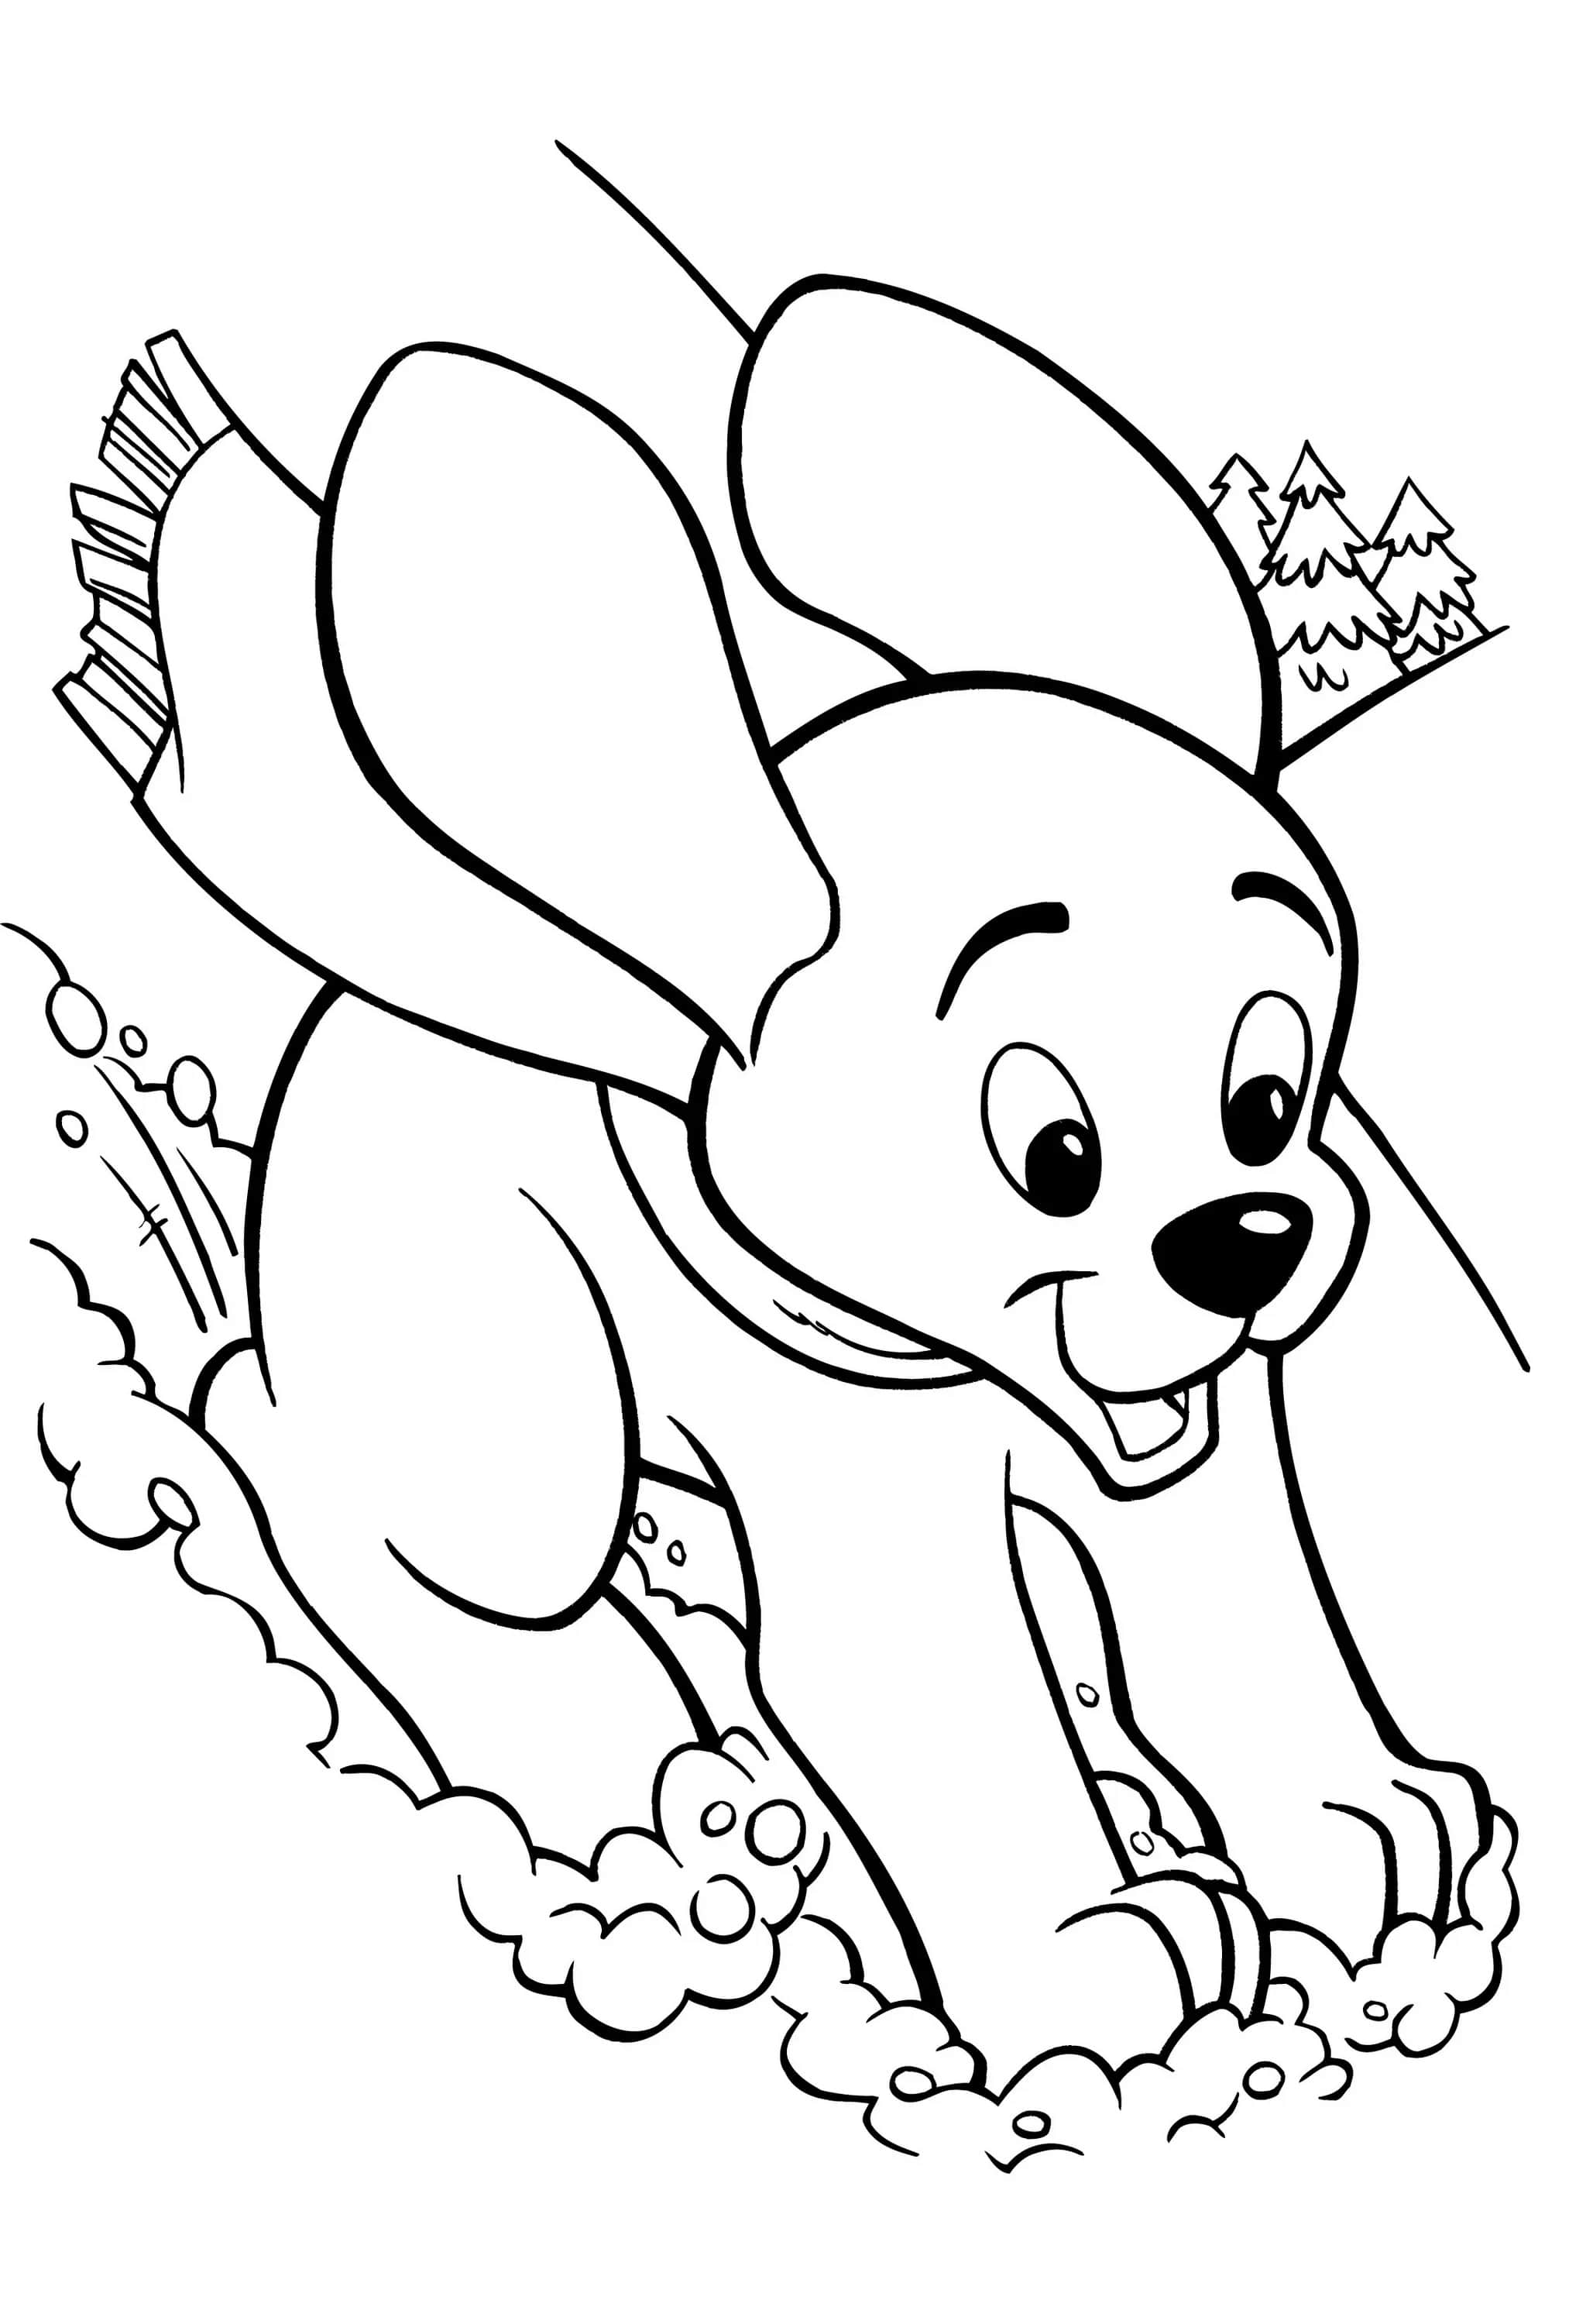 colouring dog the dog in world some dogs coloring for babies colouring dog